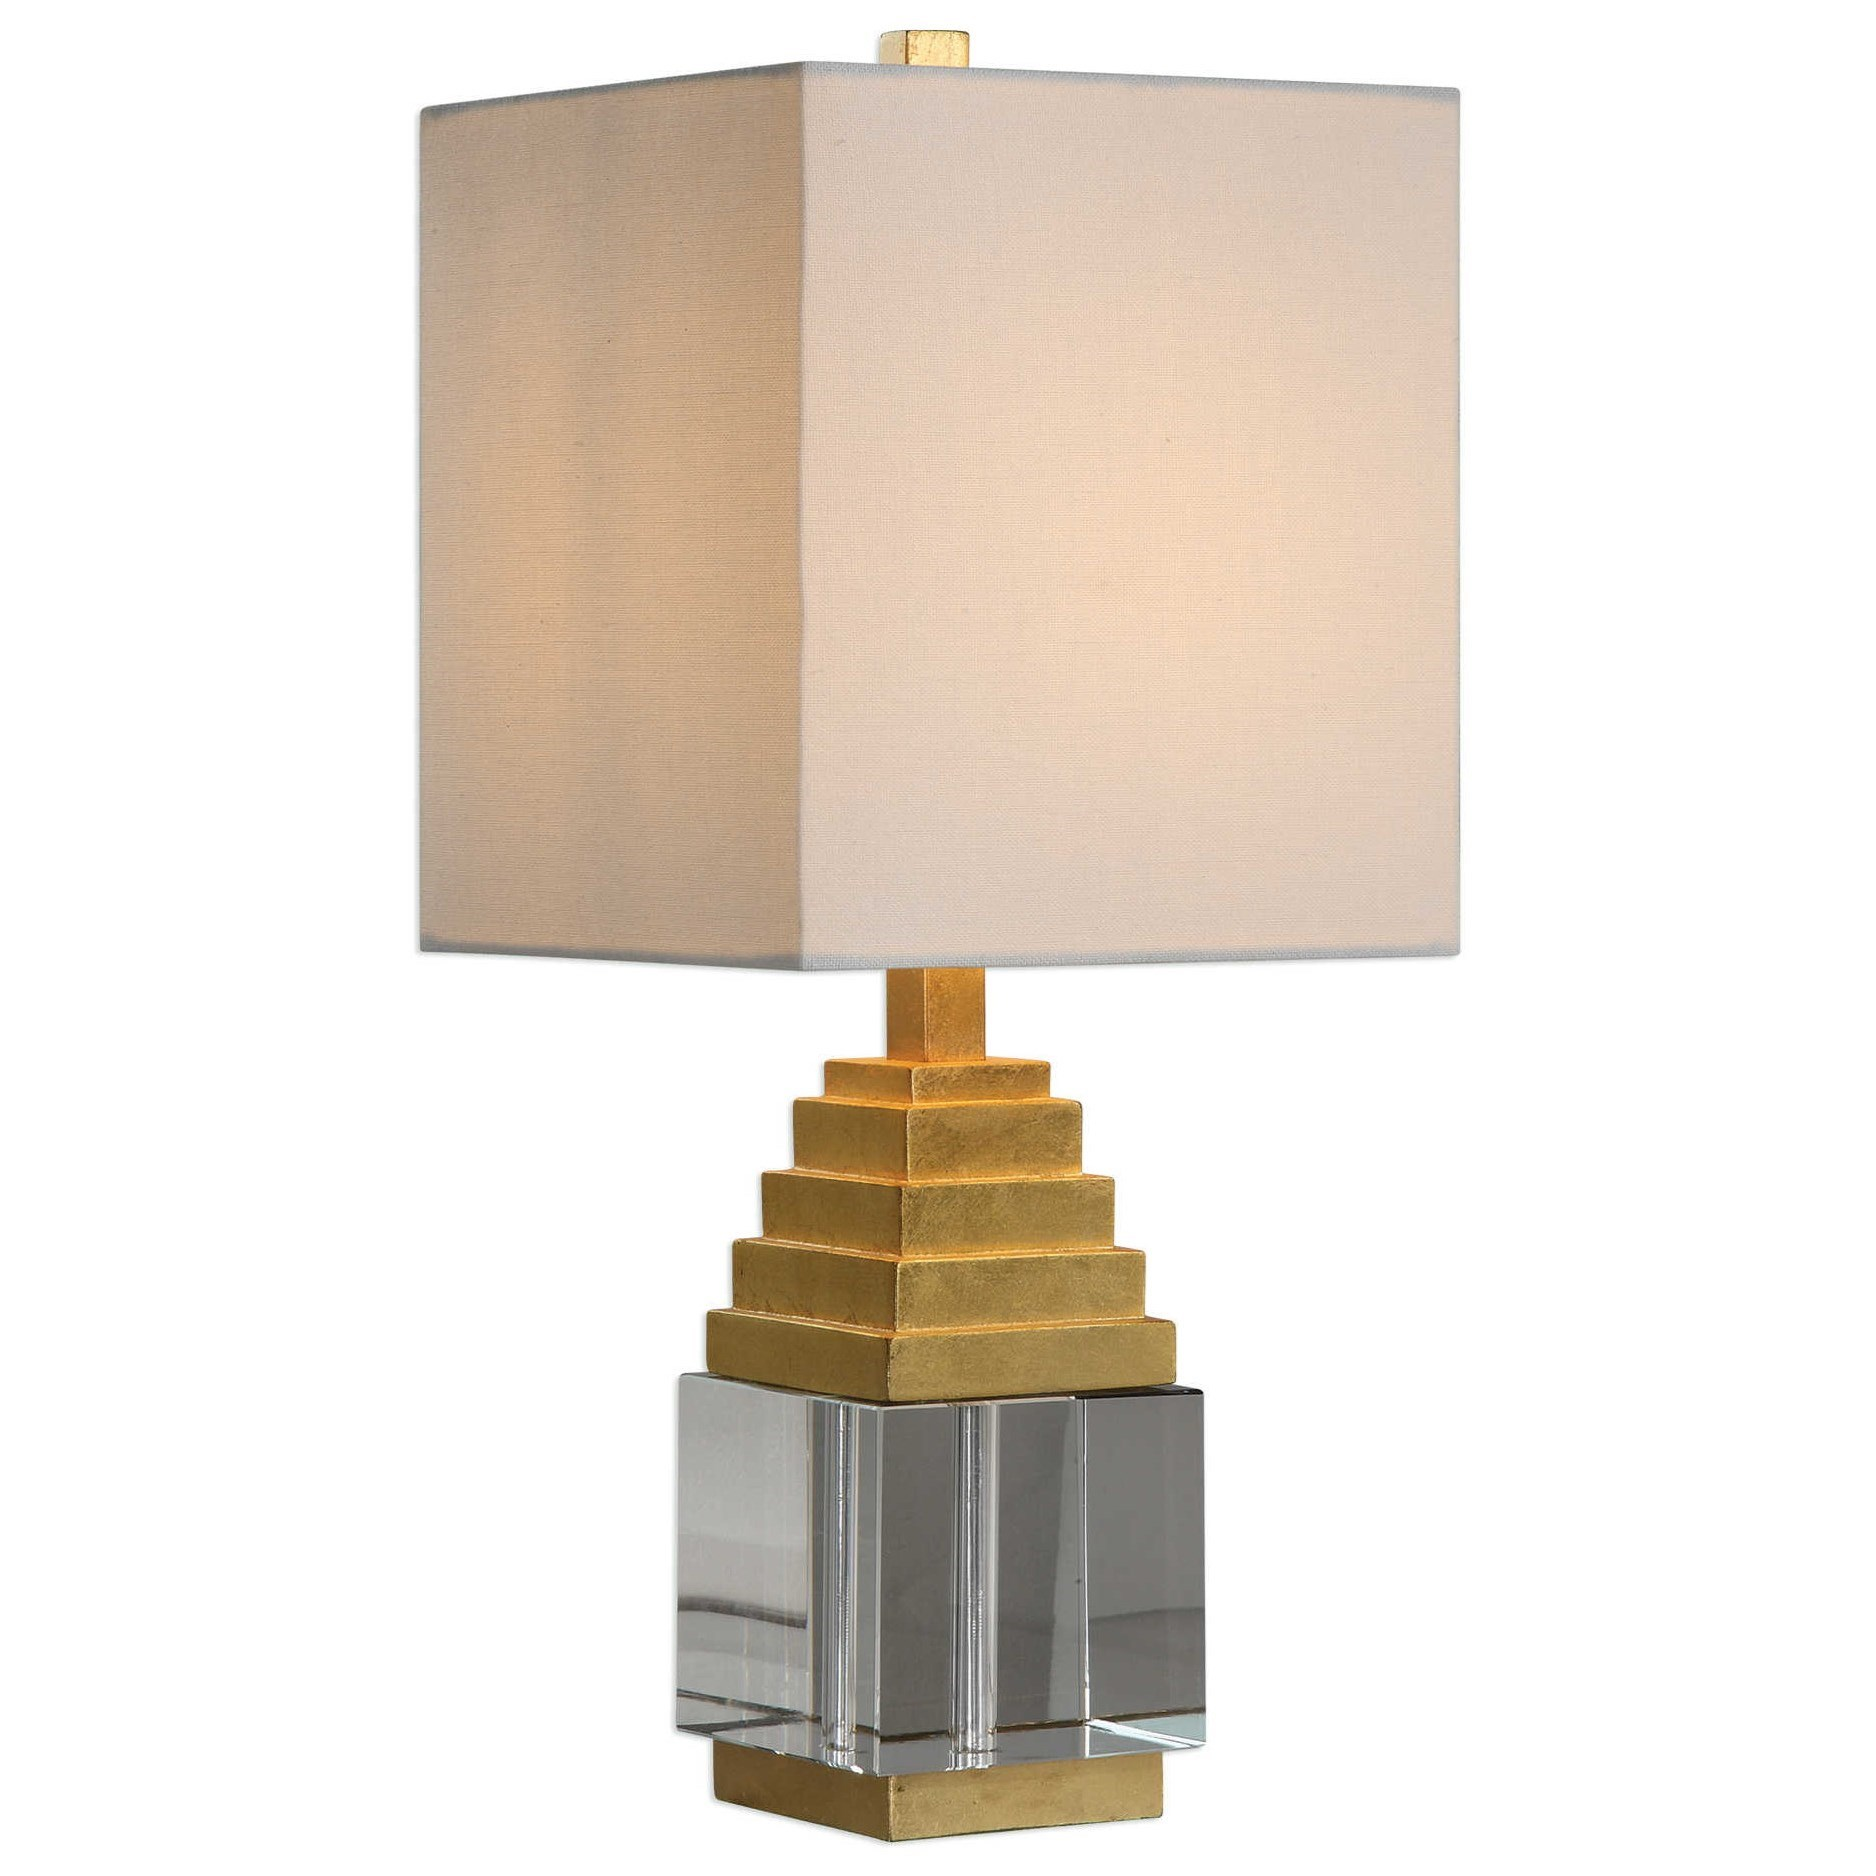 Accent Lamps Anubis Crystal Cube Lamp by Uttermost at Upper Room Home Furnishings